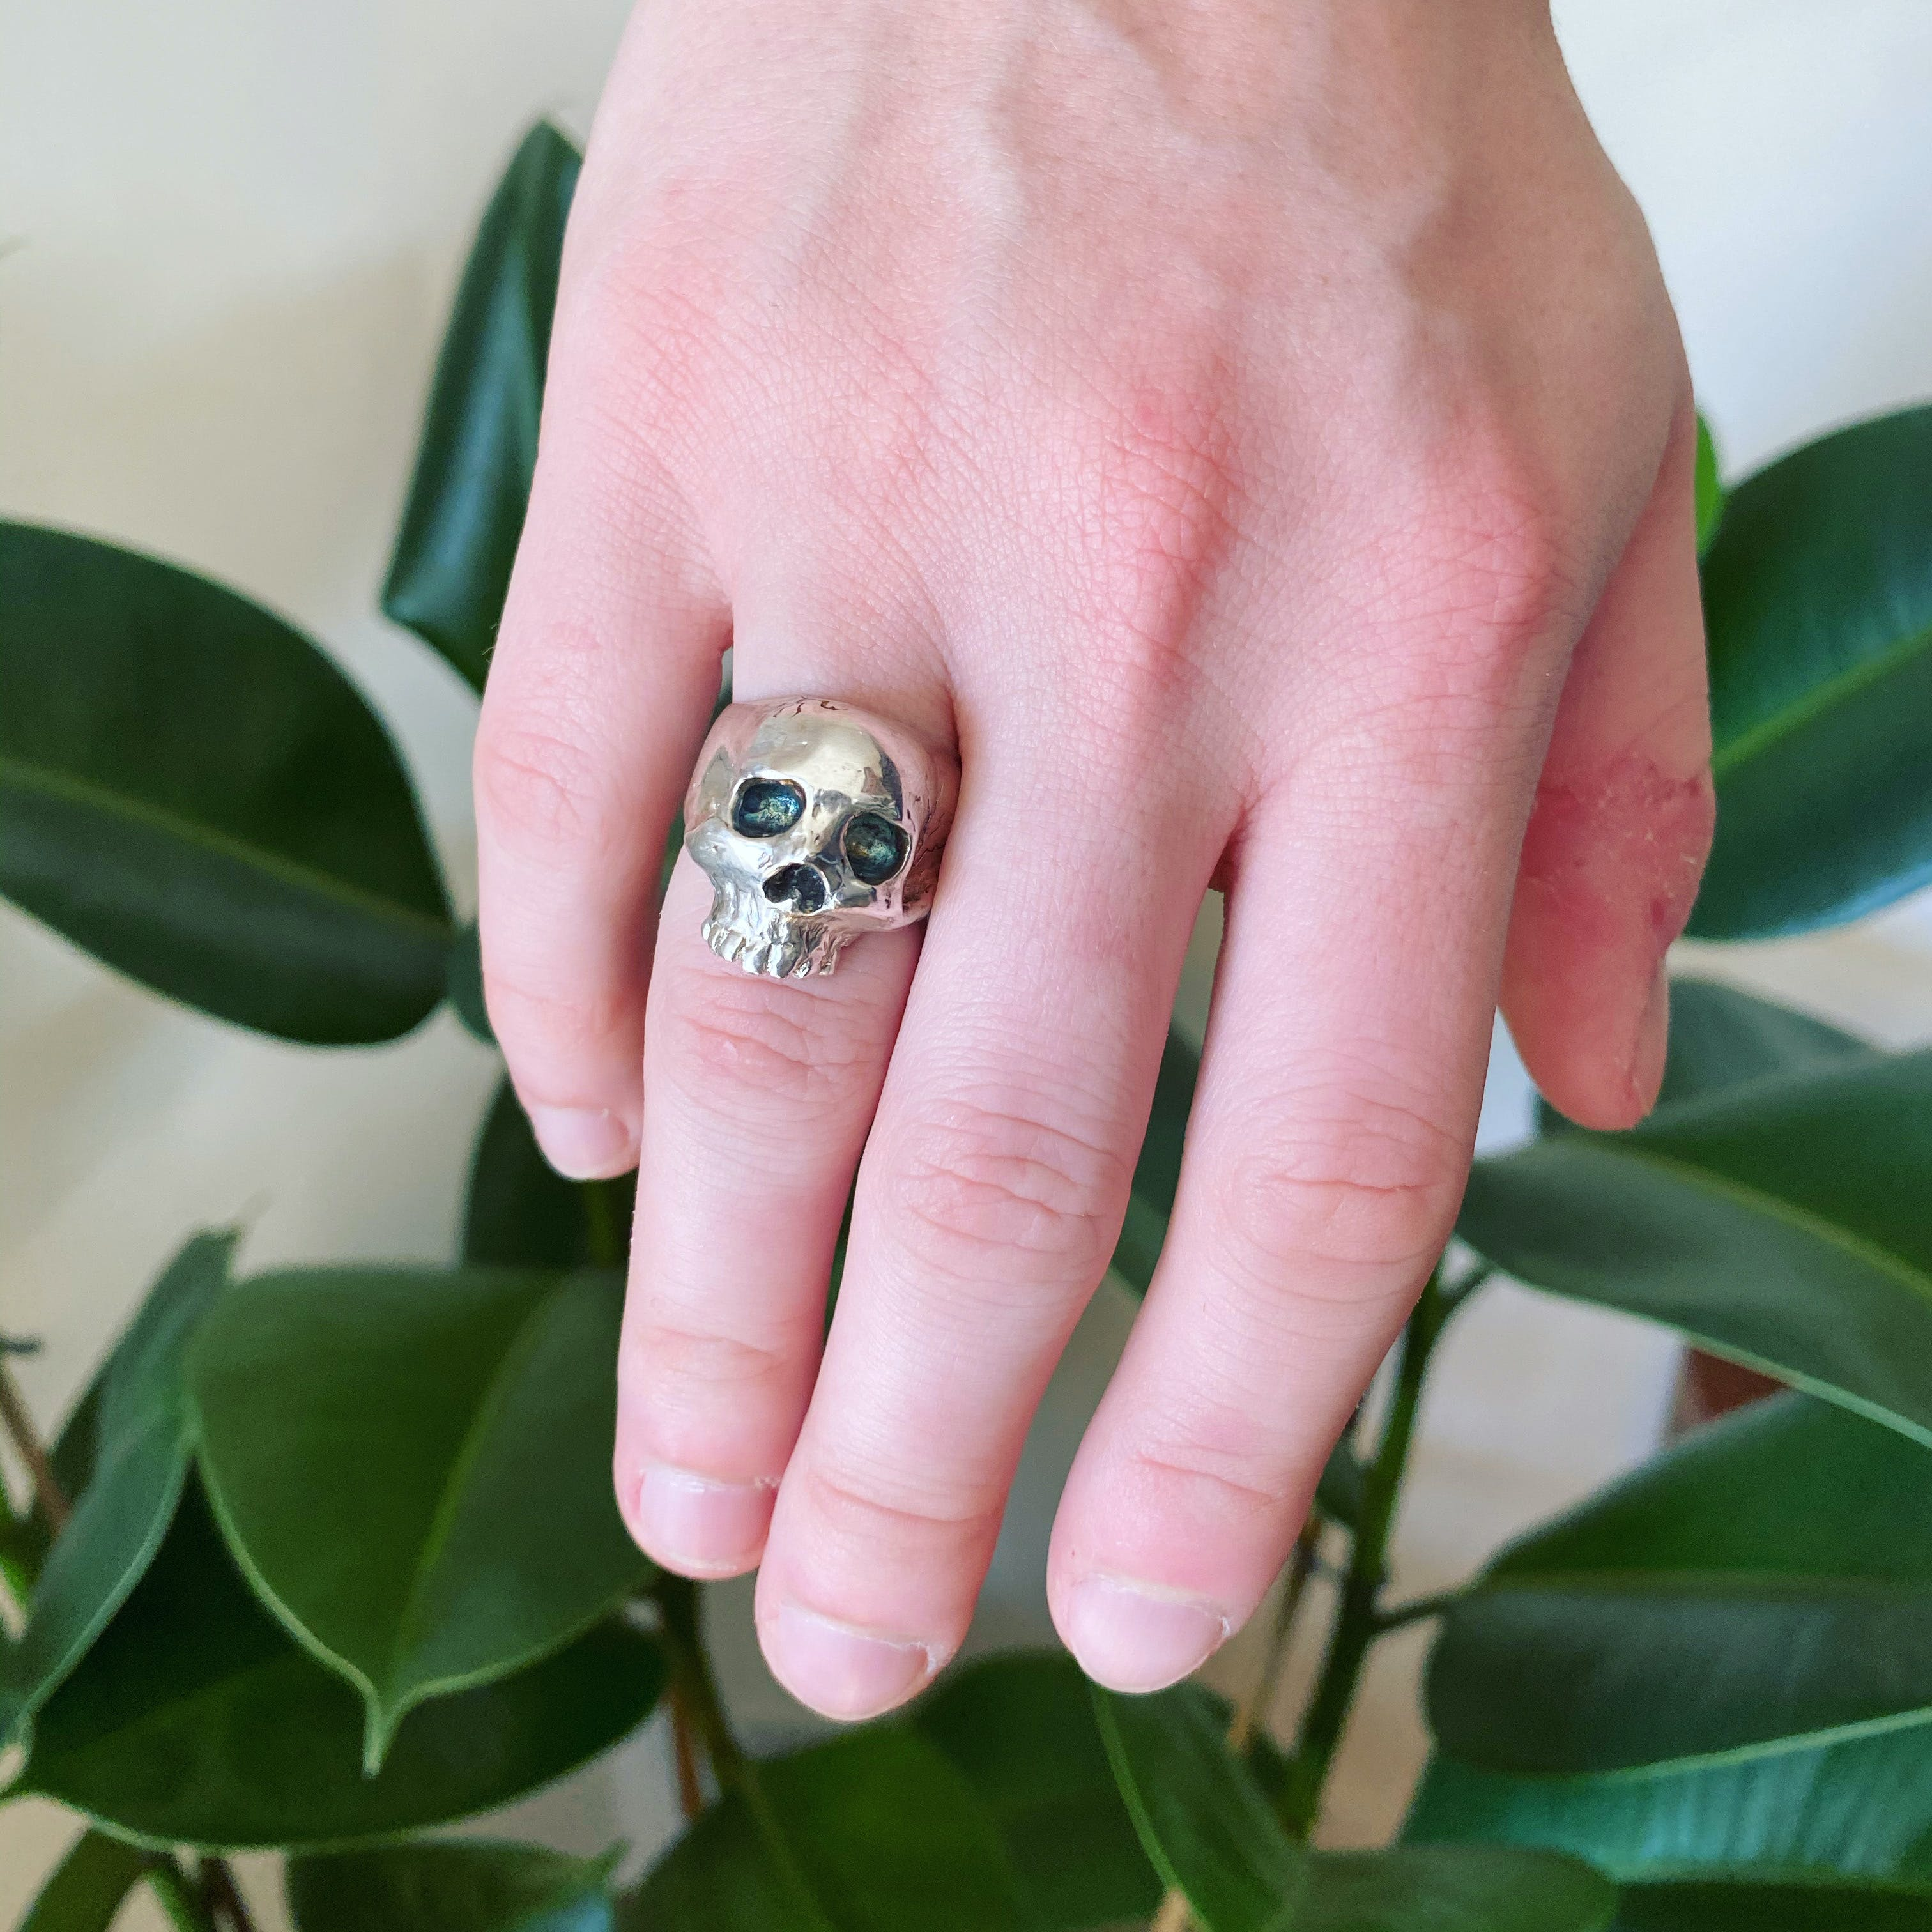 A hand with a large skull ring on the ring finger. The skull is shiny silver metal with dark grey eye and nose sockets, some small dark cracks can be seen on the upper corner.